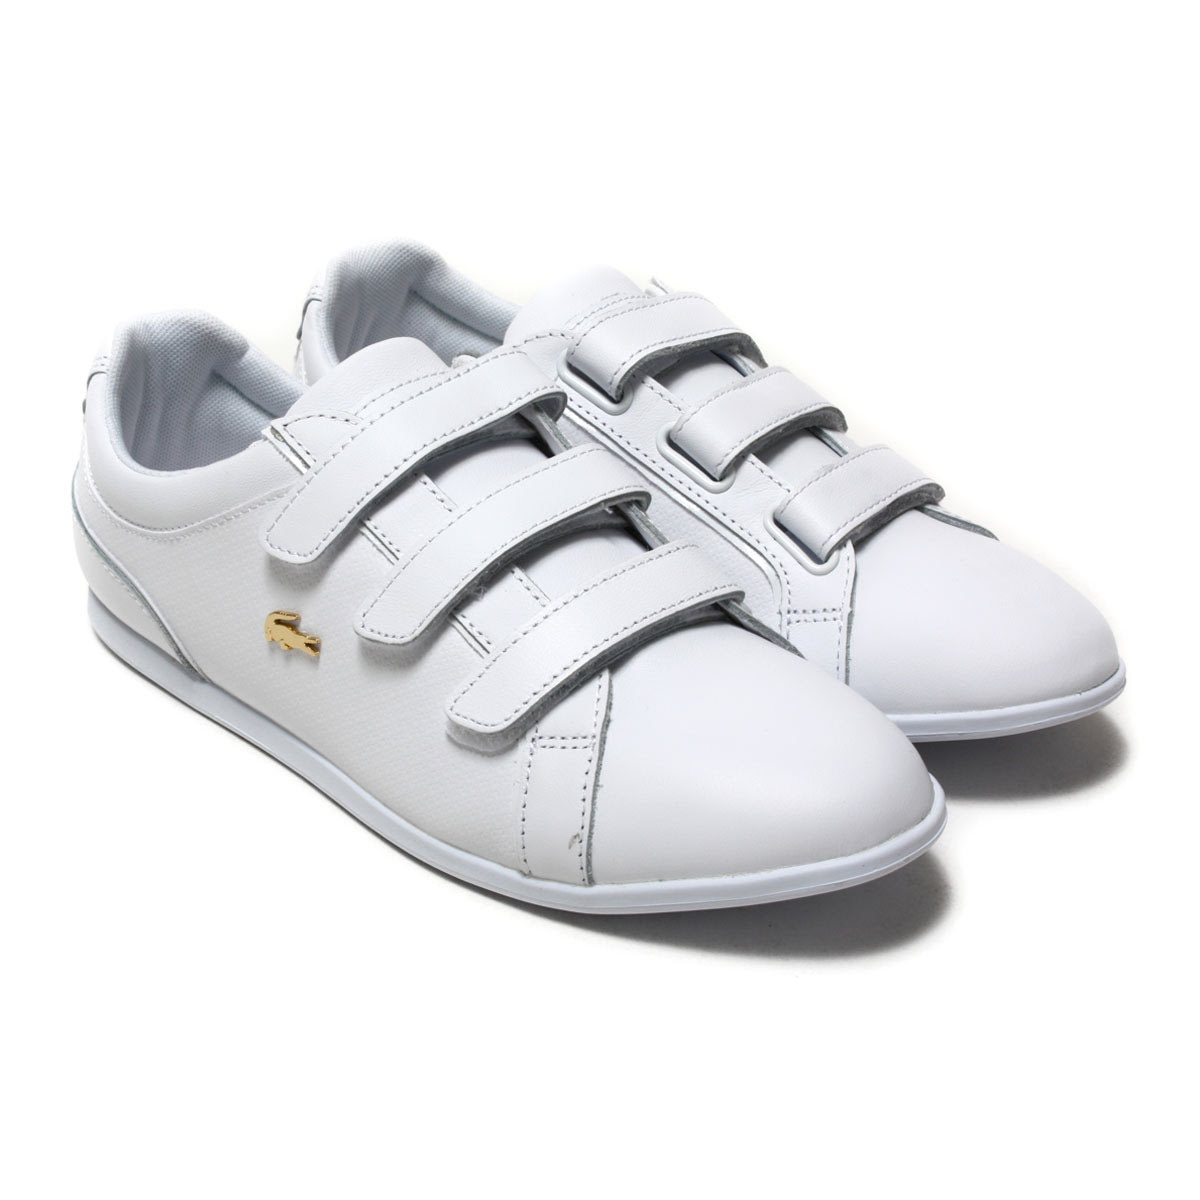 0cb306bce The upper leather which worked of the emboss is traditional graphic of  Lacoste. The low profile sneakers for the woman ...